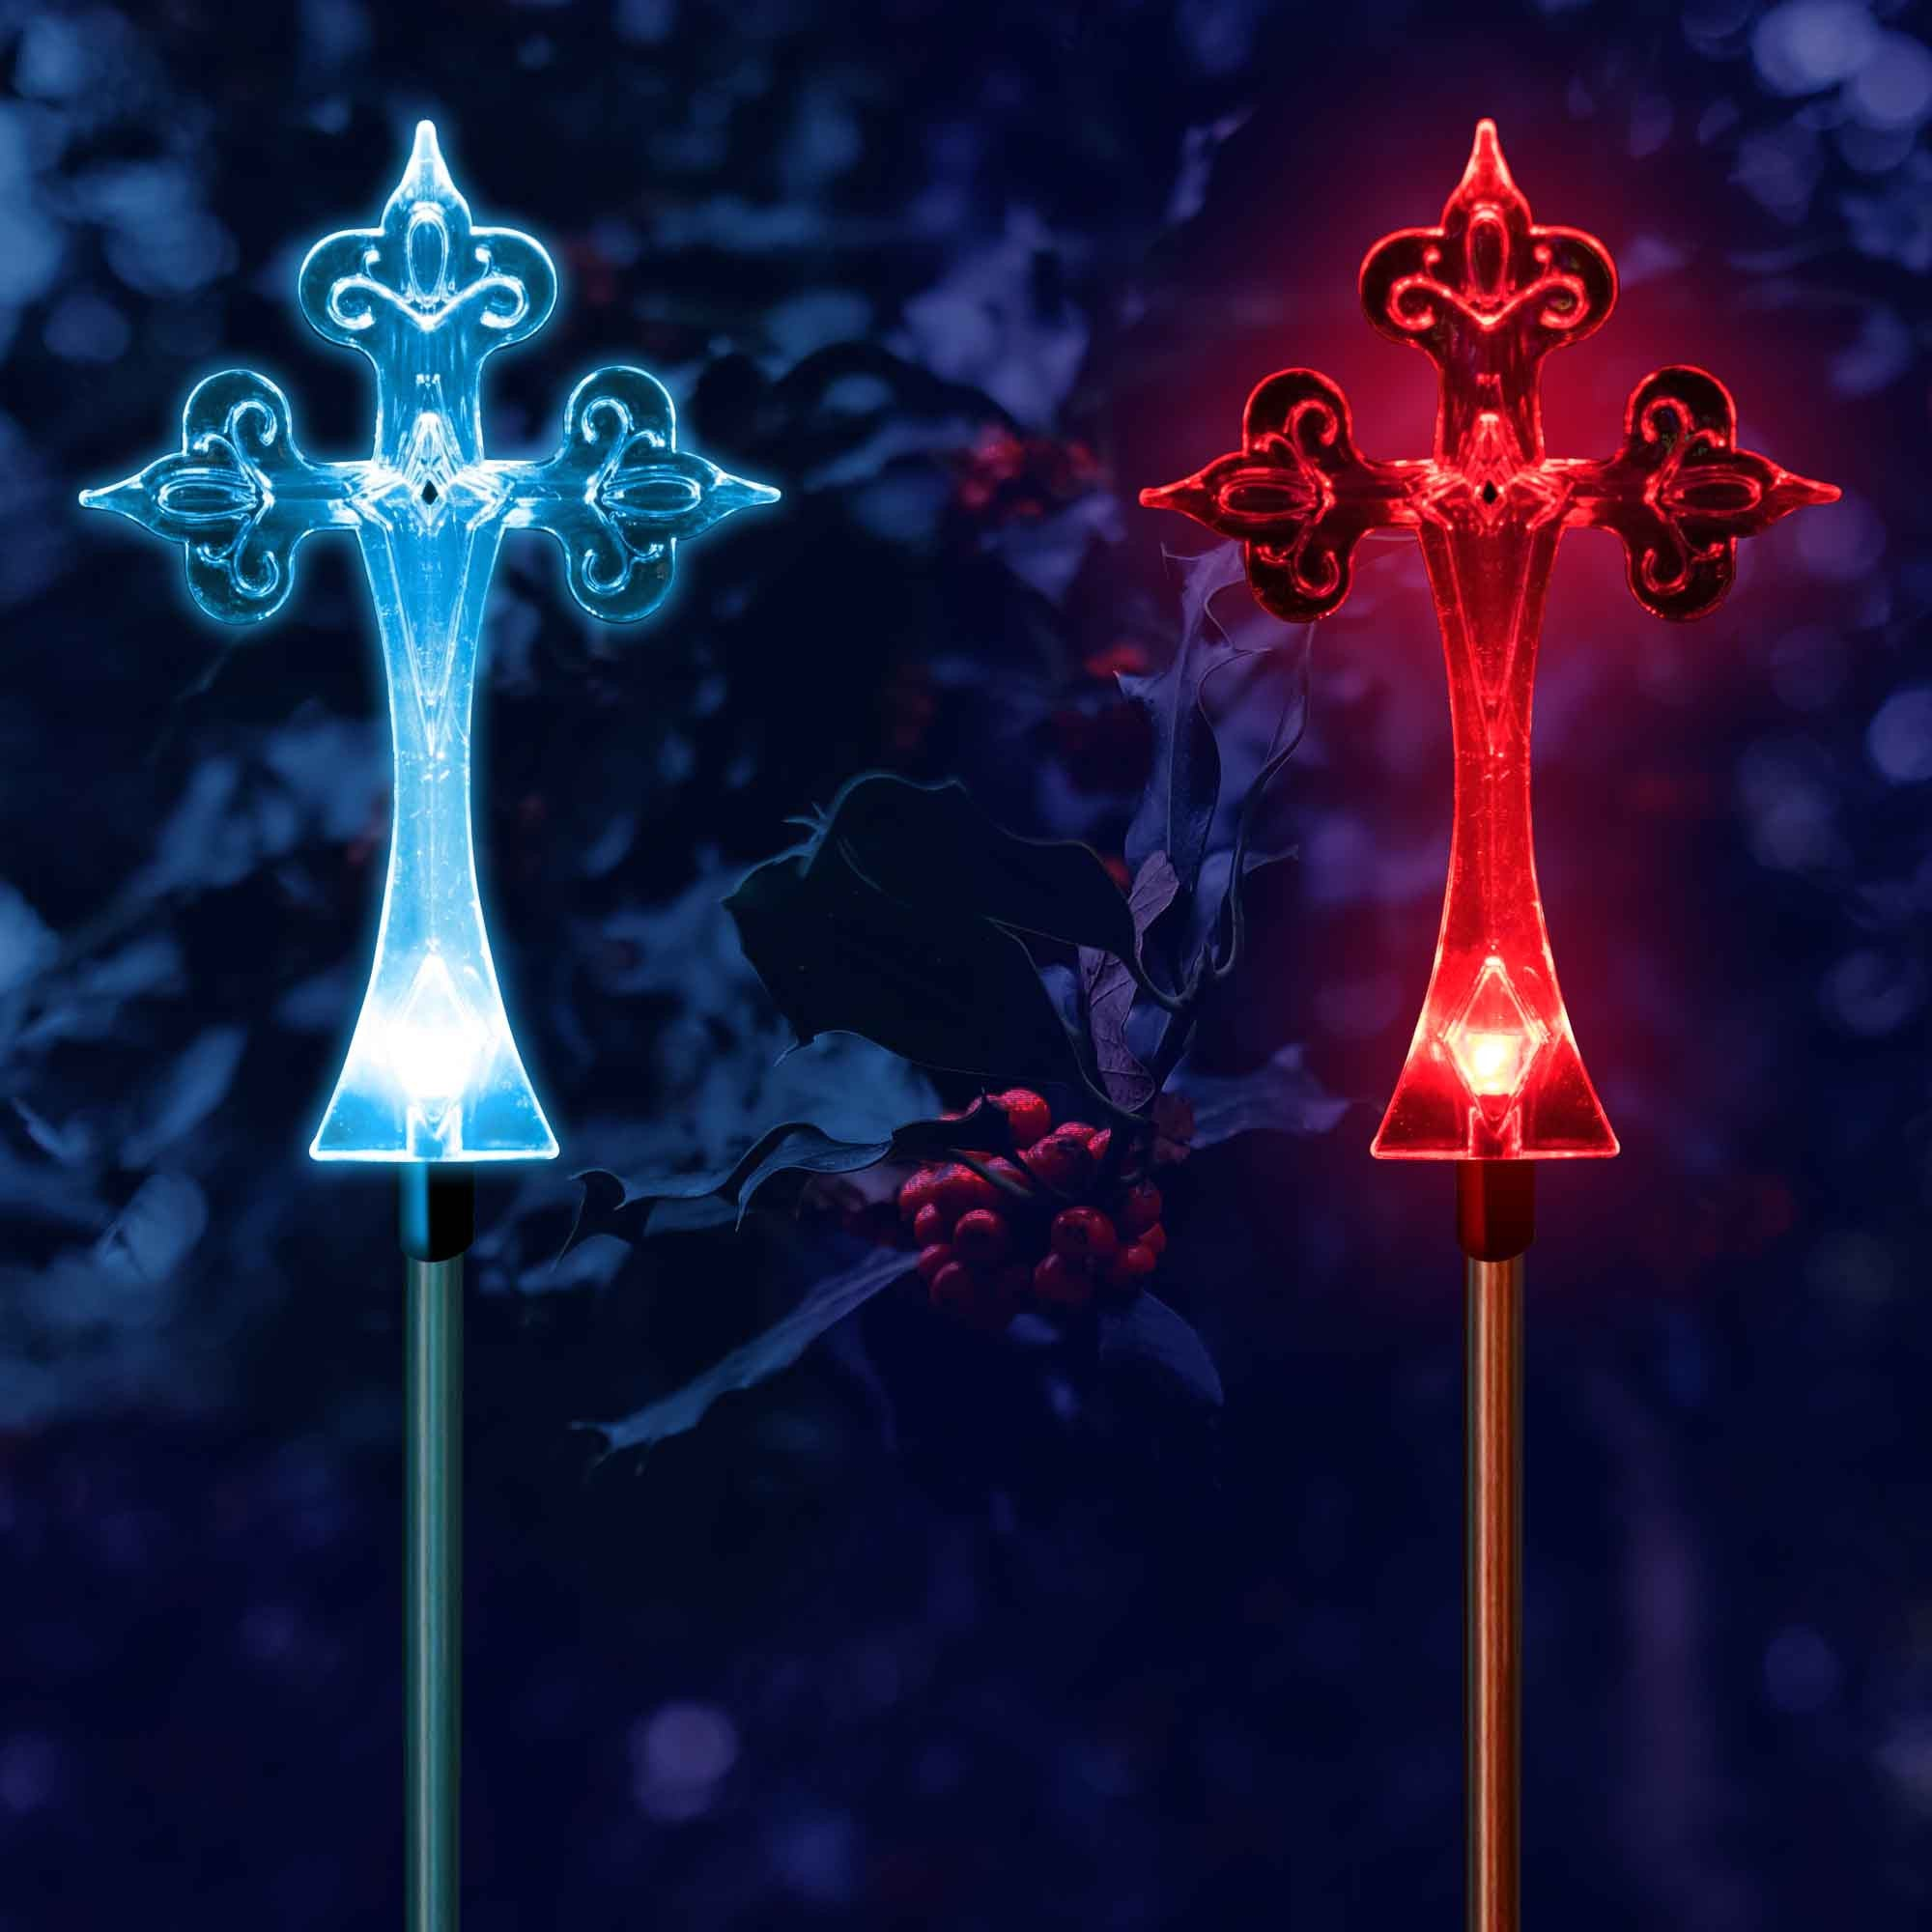 Solar garden christmas cross stake outdoor light my dream palace solar garden christmas cross stake outdoor light landscape pathway lighting my dream palace mozeypictures Gallery